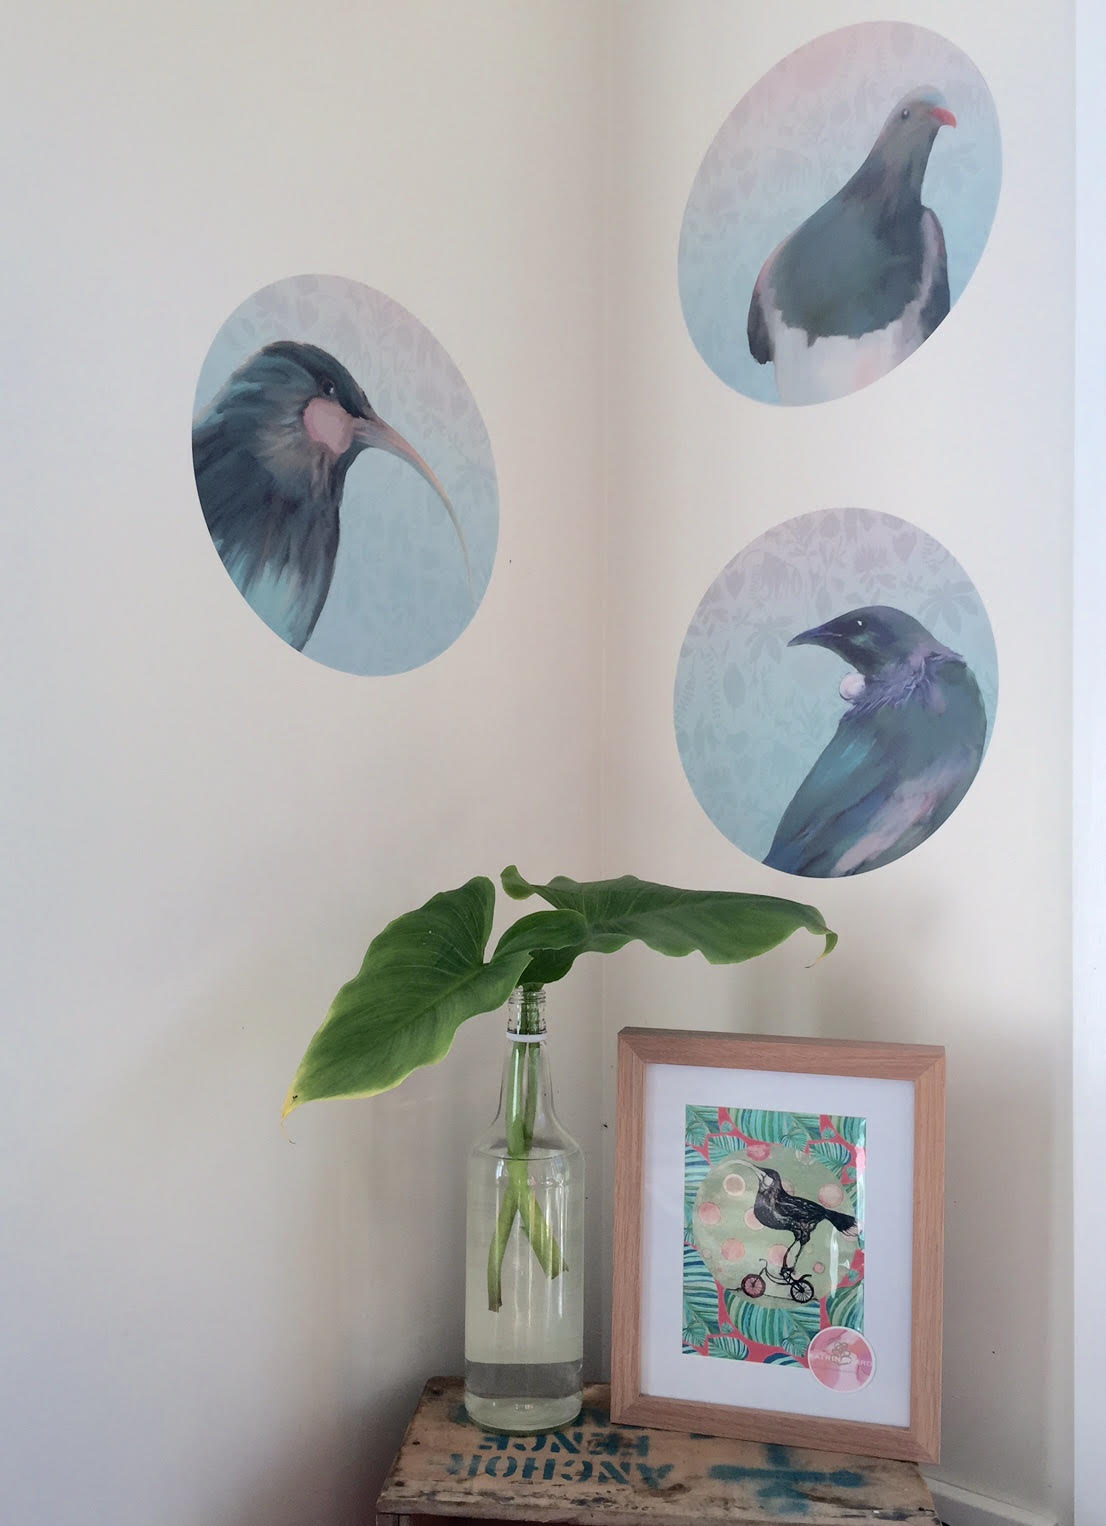 New Zealand birds wall spots - they can be positioned as a flock or on their own for instant awesome.